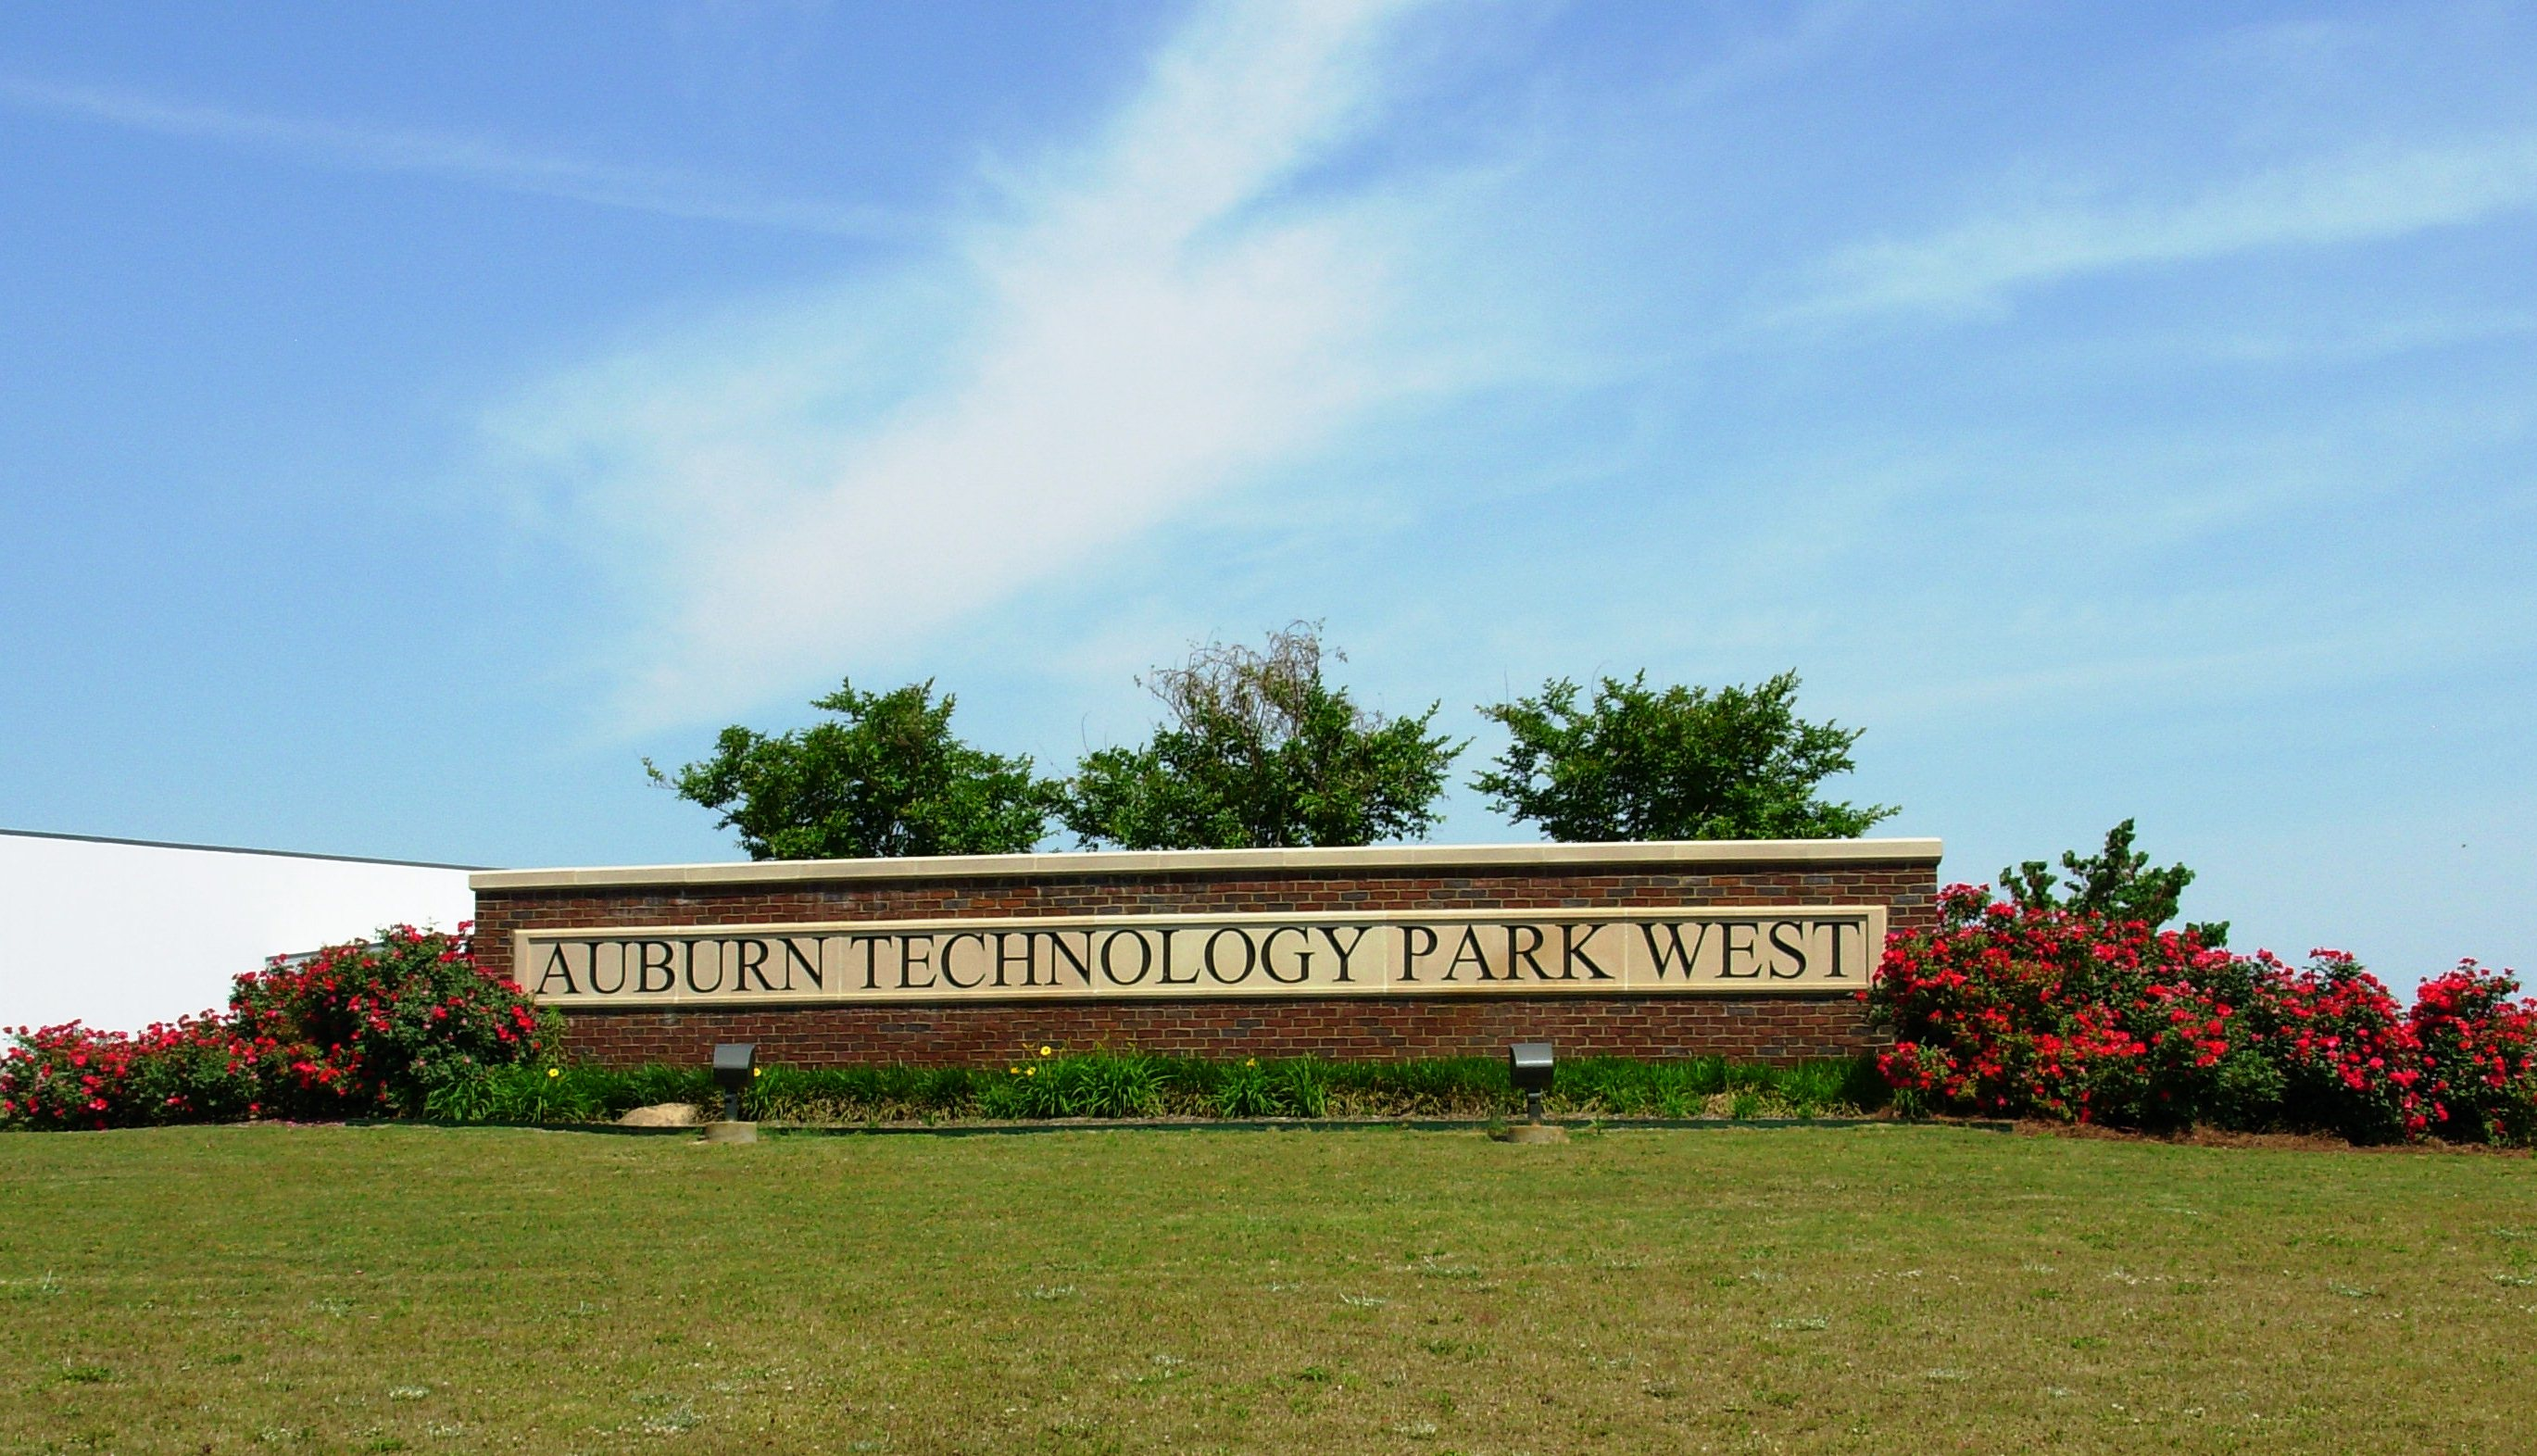 Auburn Technology Park West